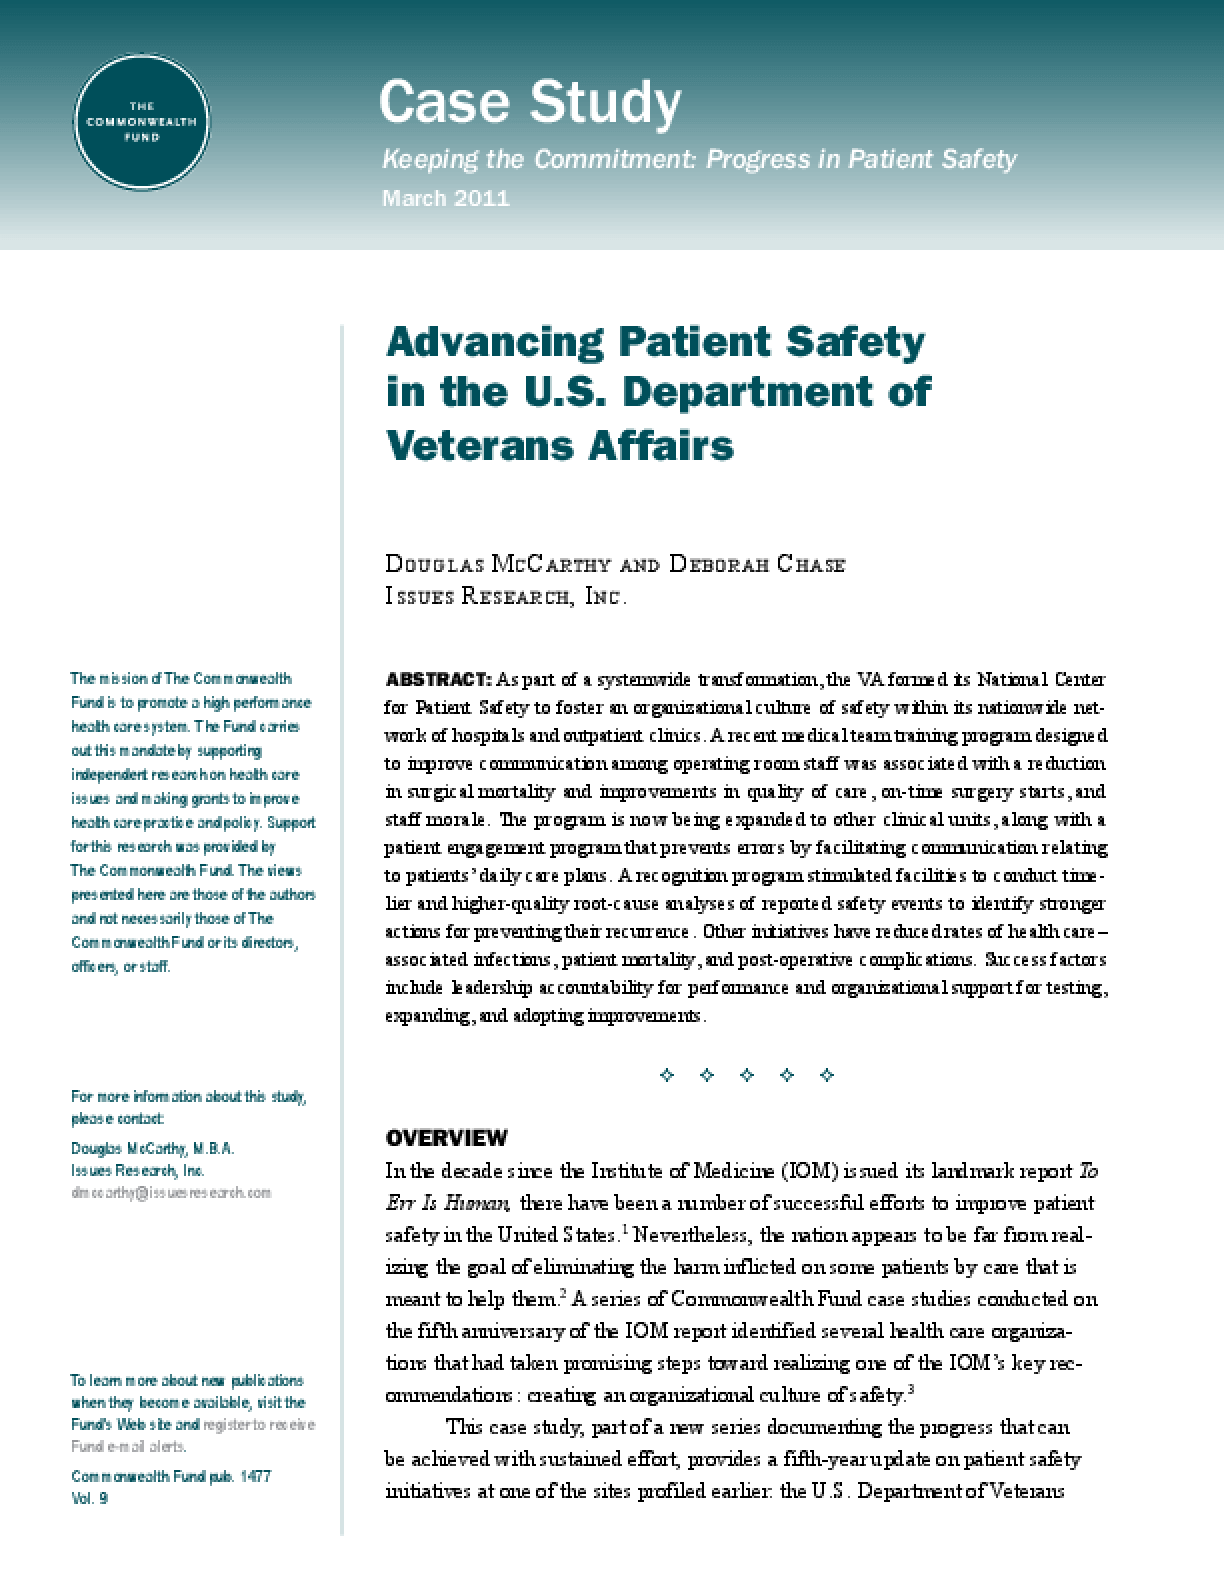 Advancing Patient Safety in the U.S. Department of Veterans Affairs